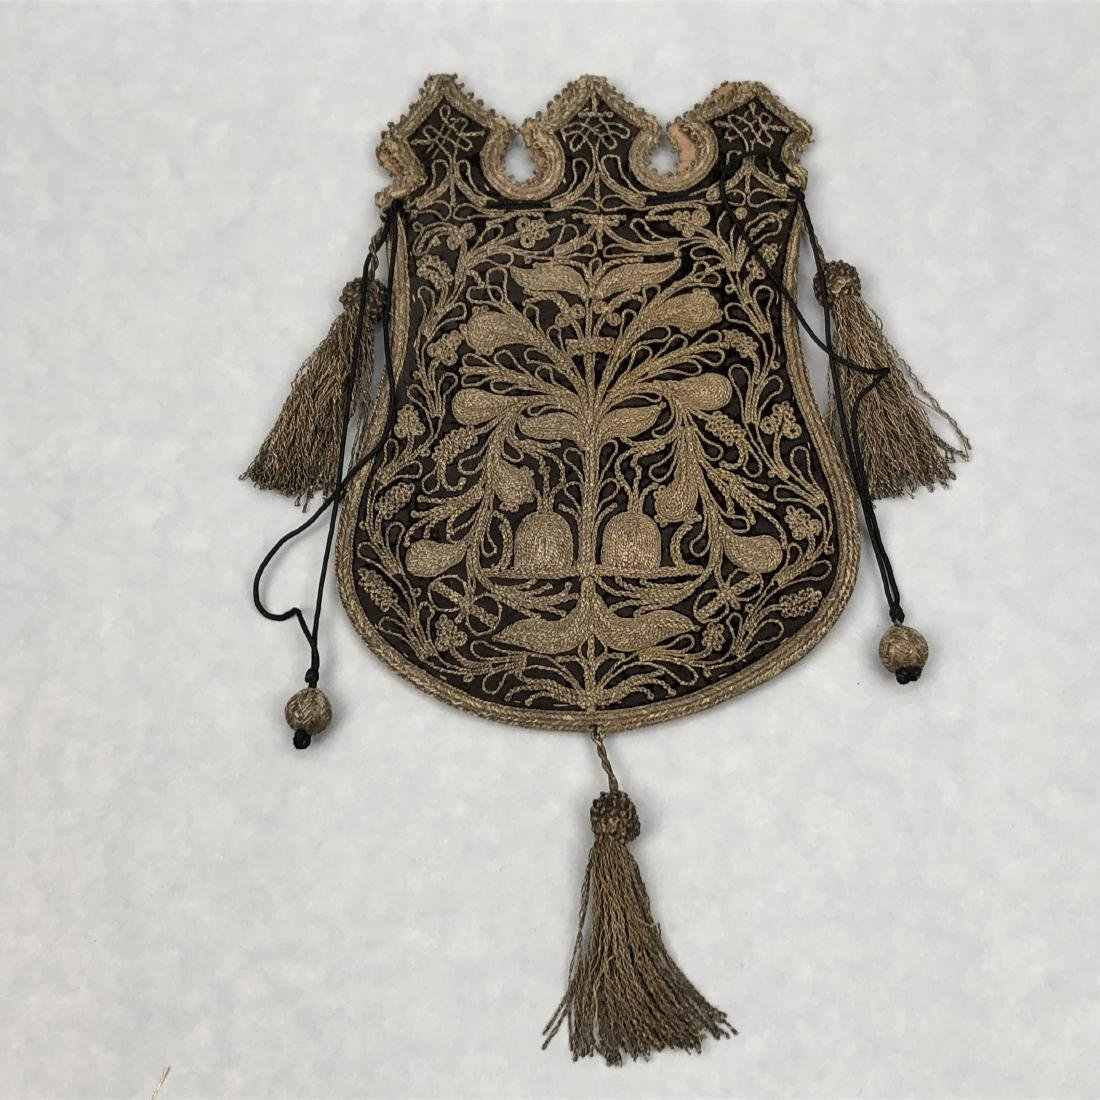 METALLIC EMBROIDERED BAG with TASSELS, 1870s - 3